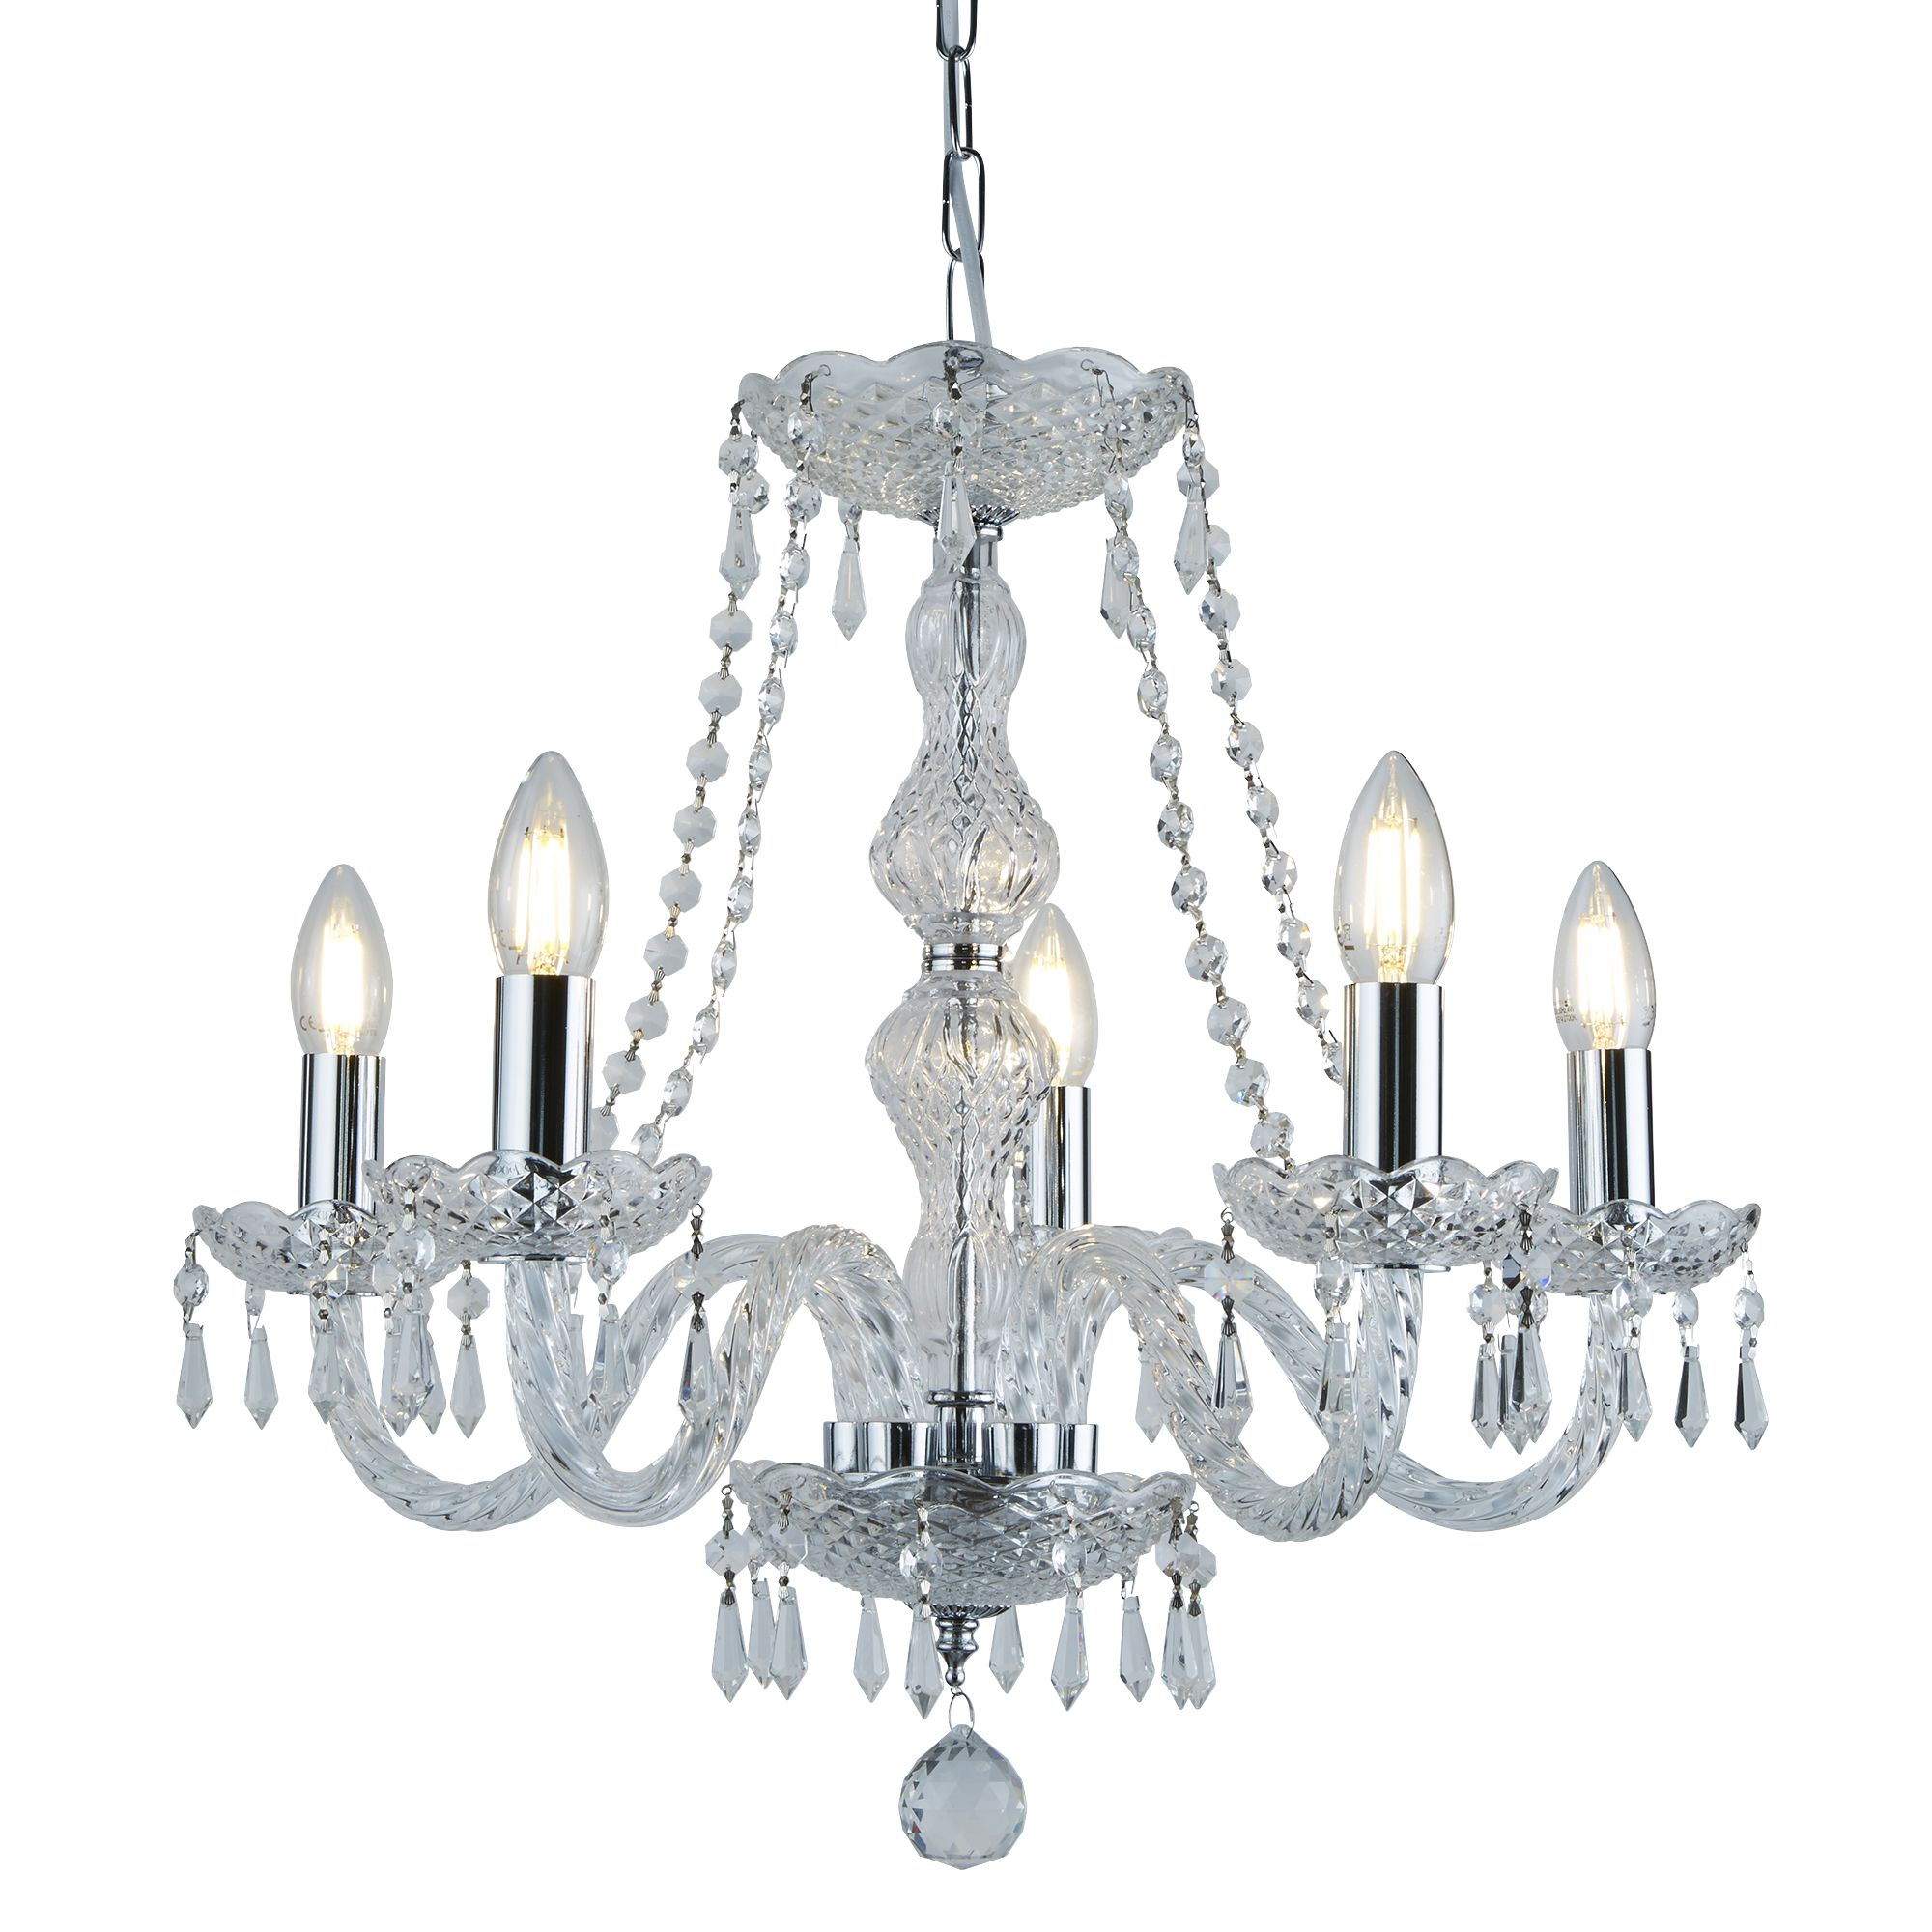 Hale Chrome 5 Light Chandelier With Crystal Trimmings